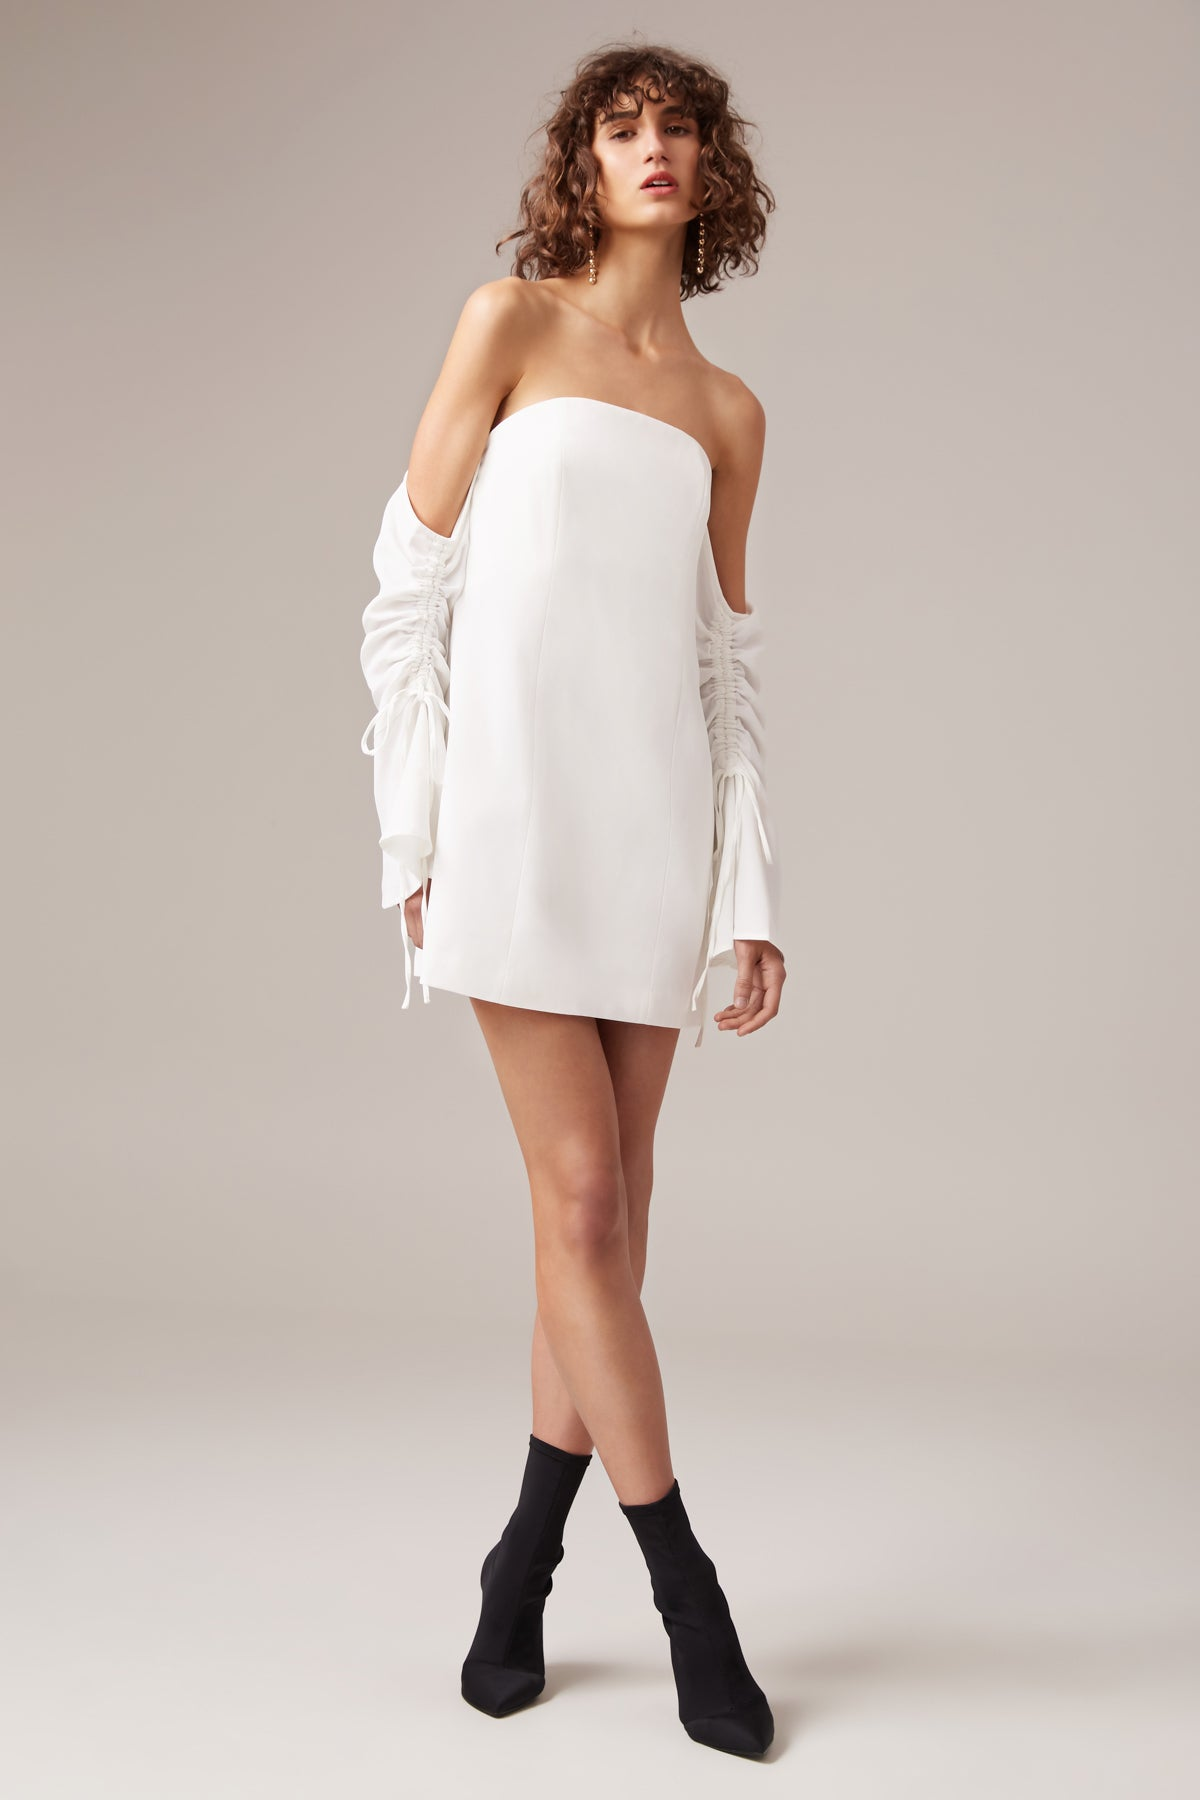 OUTLINE LONG SLEEVE DRESS ivory